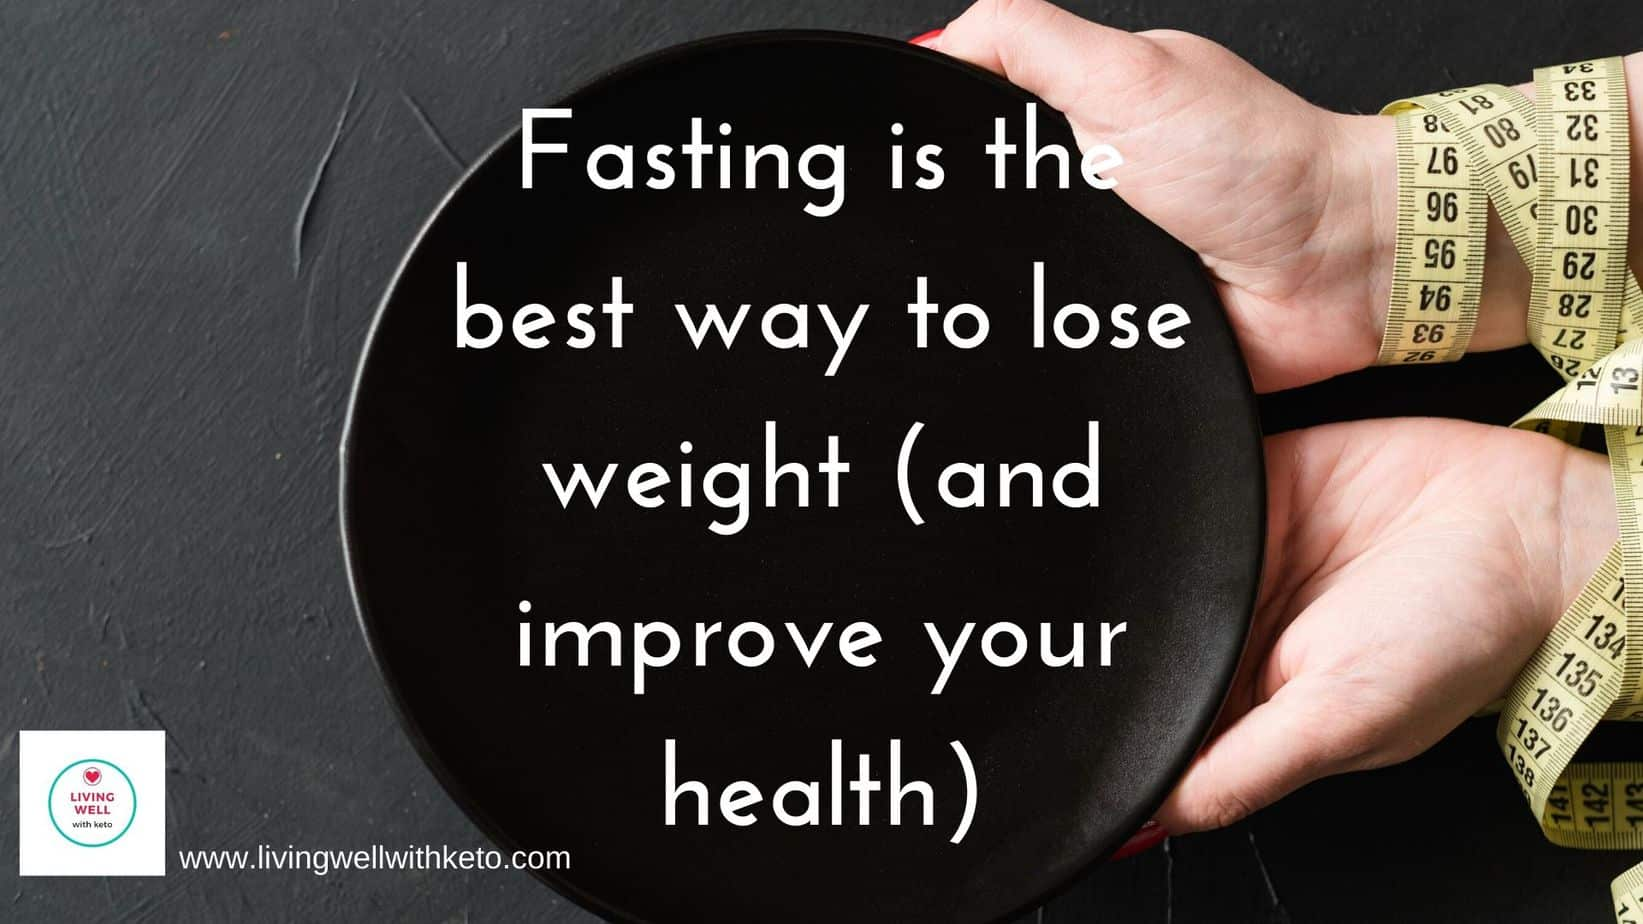 fasting is the best way to lose weight (and improve your health)